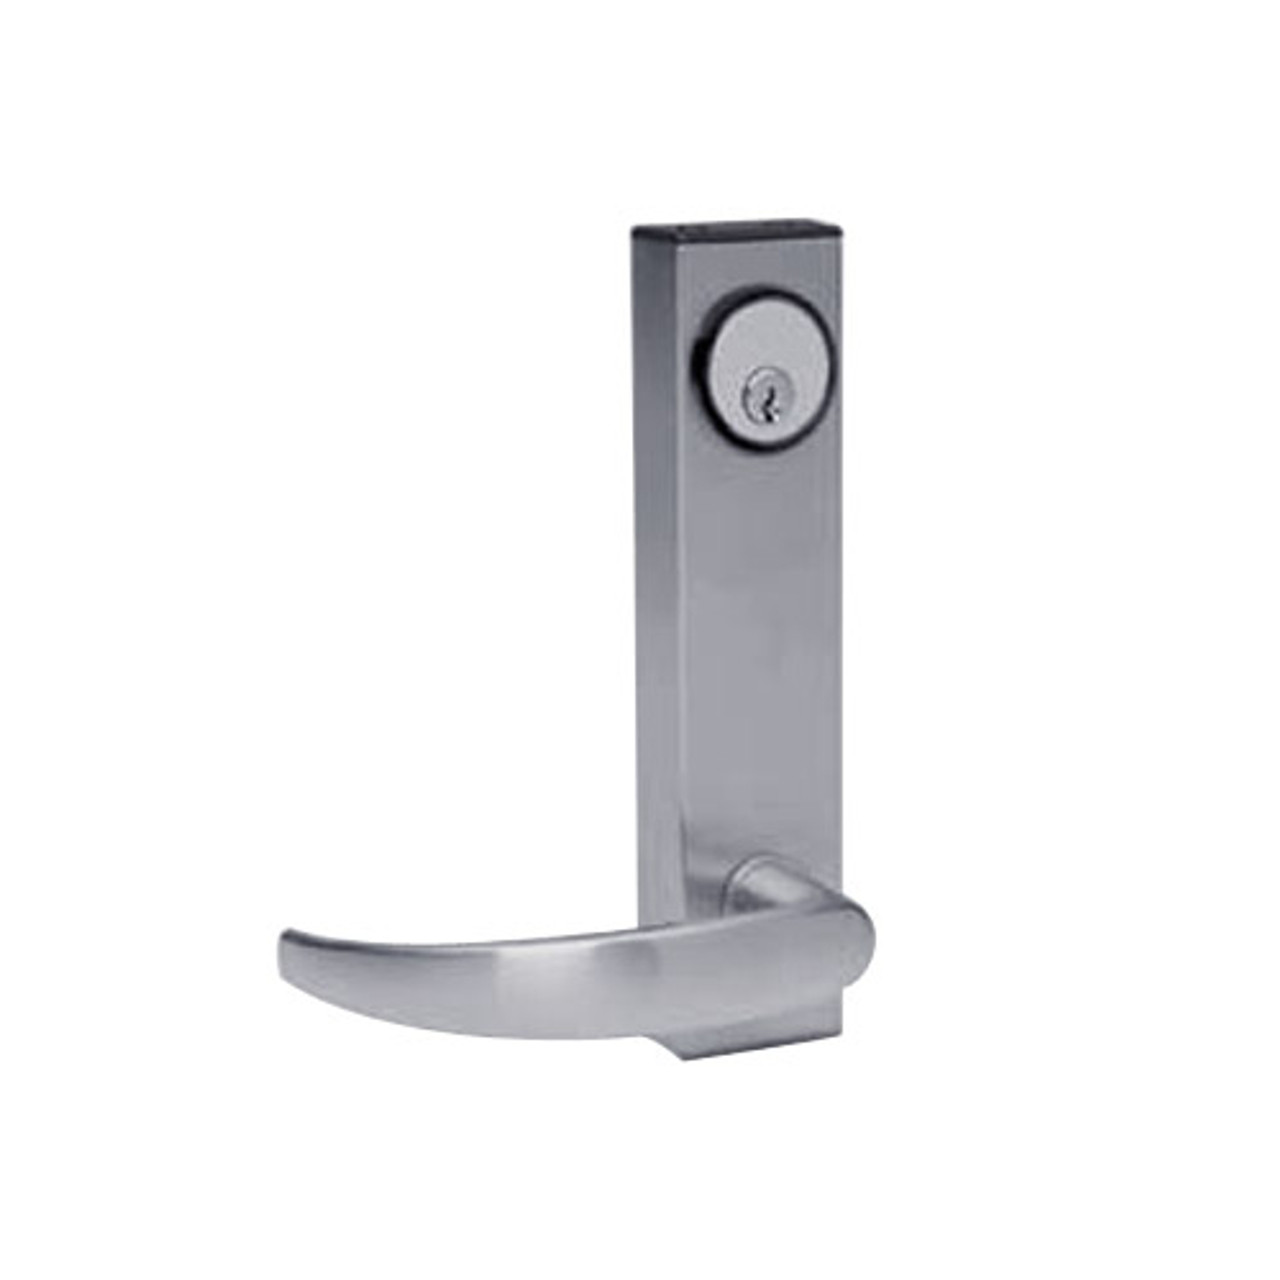 3080E-01-0-3U-50 US32D Adams Rite Electrified Entry Trim with Curve Lever in Satin Stainless Finish